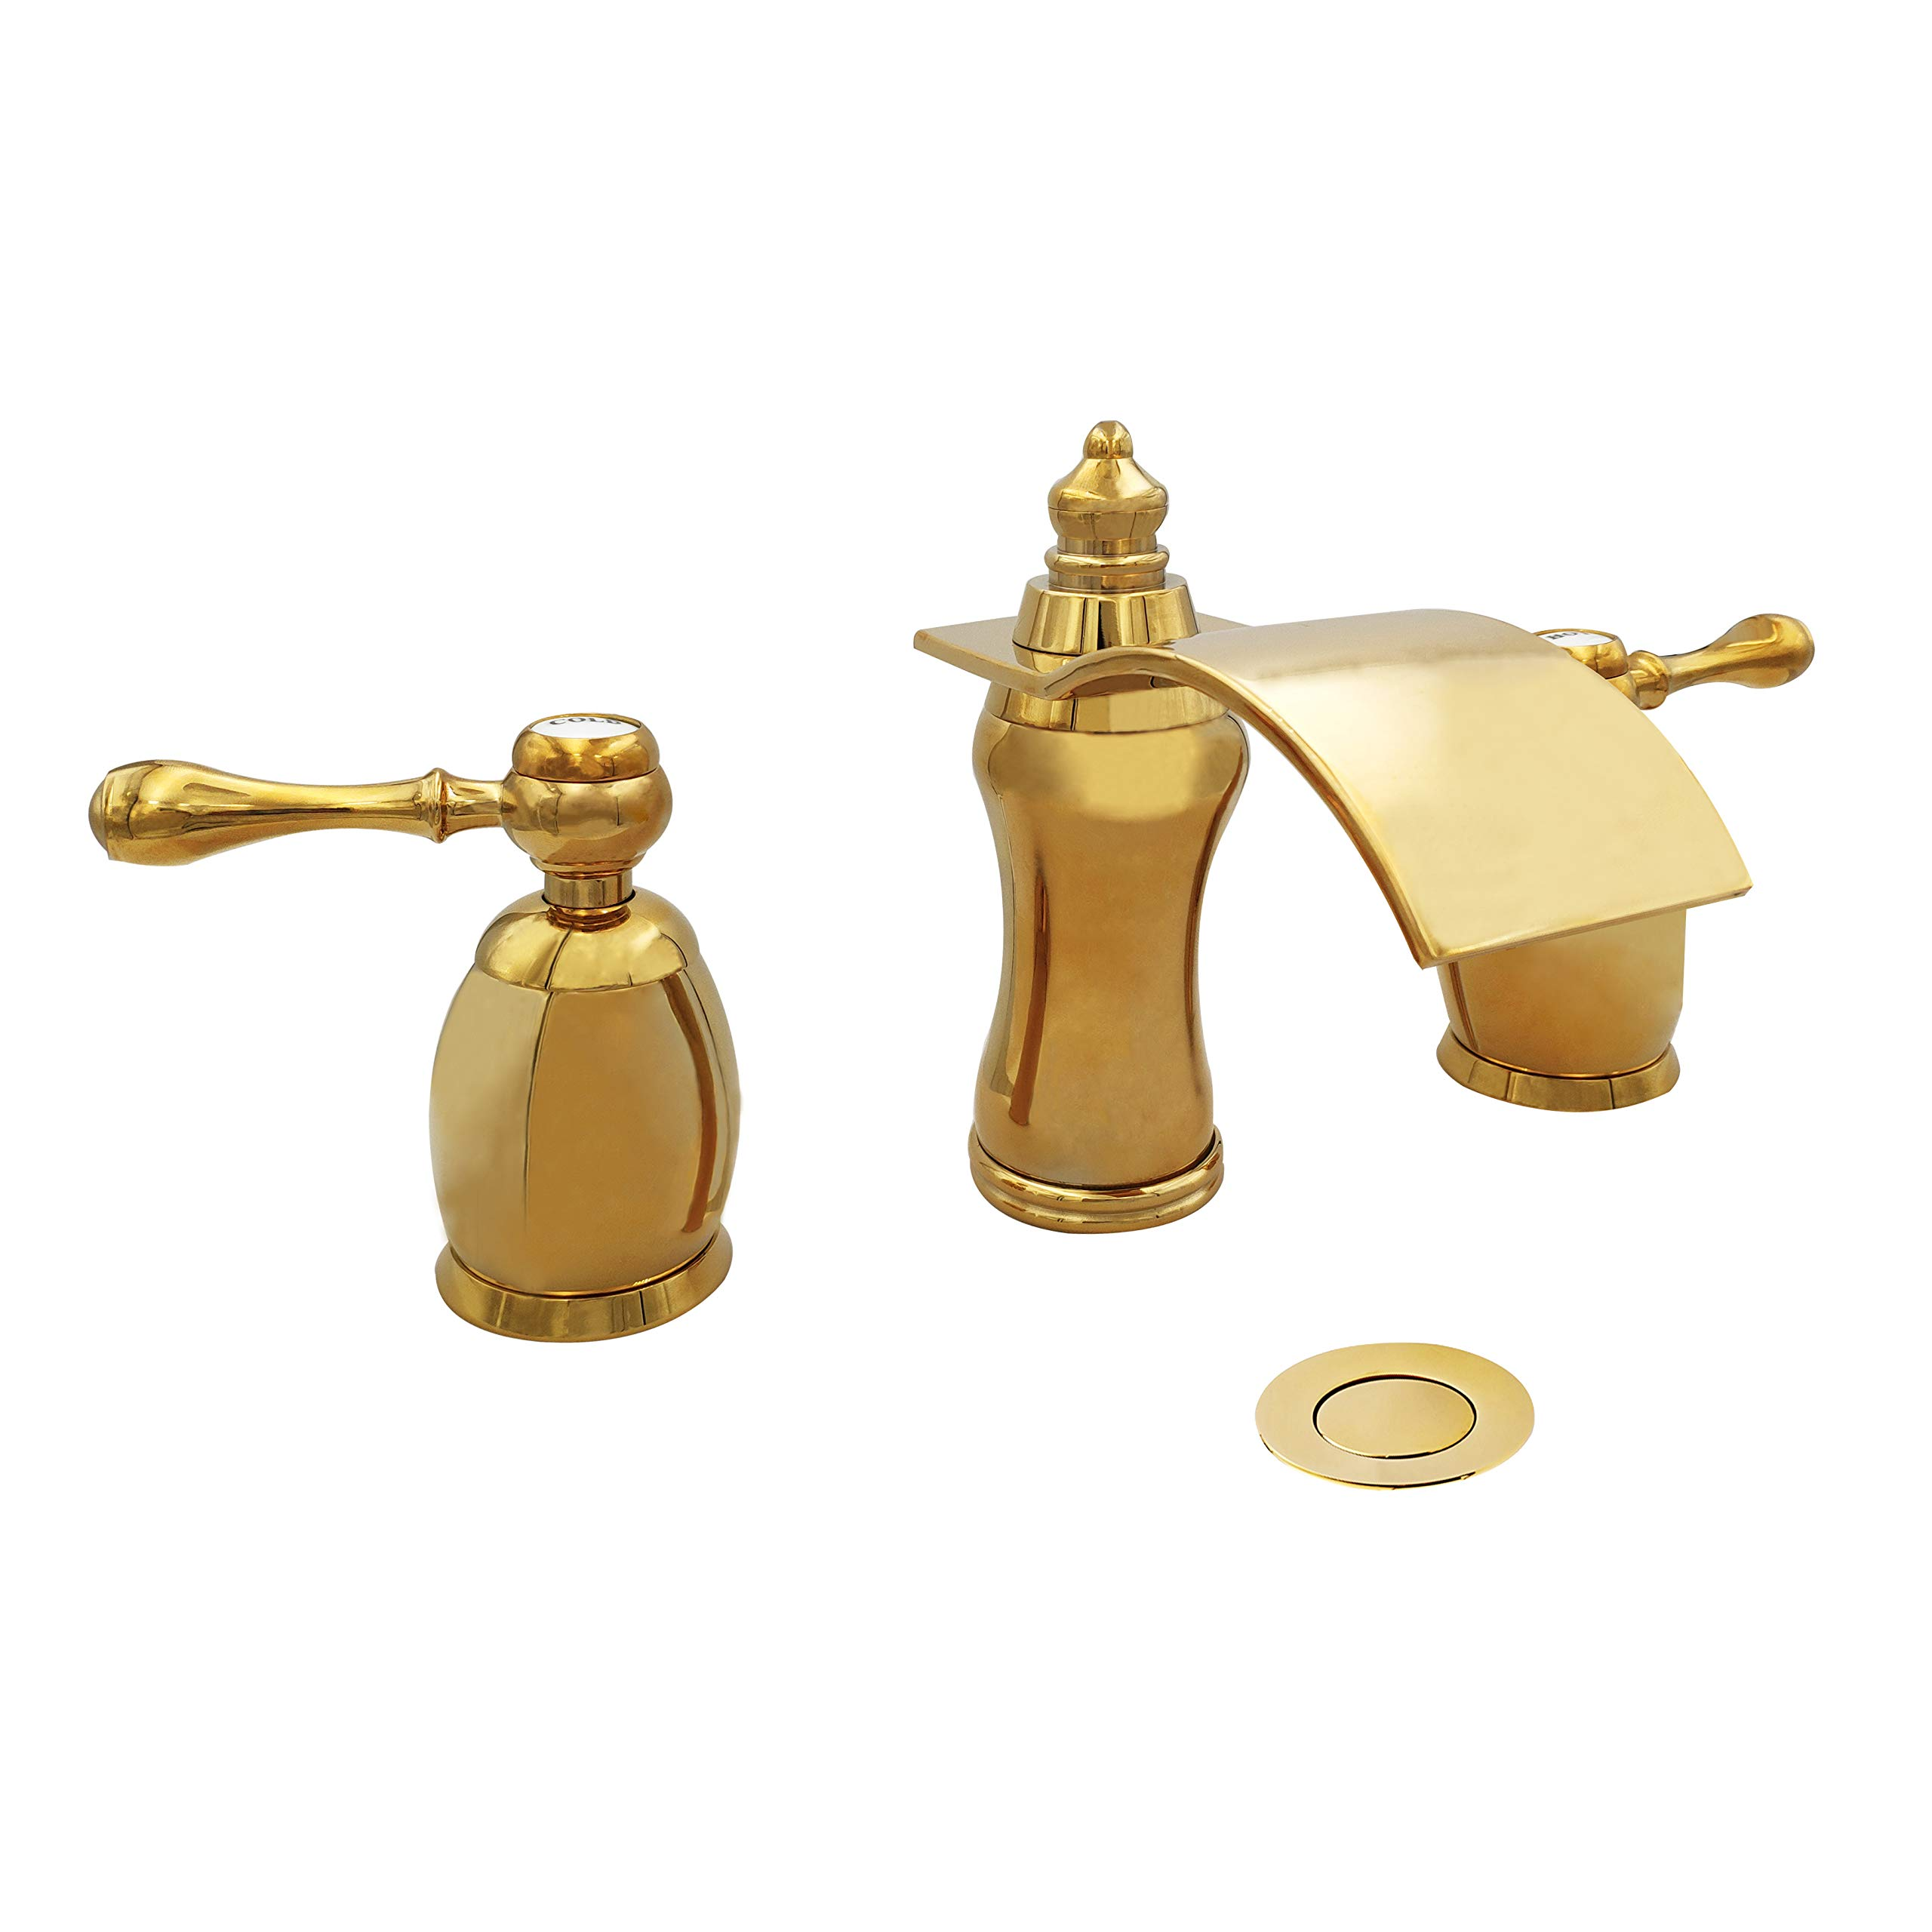 Wovier Gold Polished Waterfall Bathroom Sink Faucet,Two Handle Three Hole Vessel Lavatory Faucet,Widespread Basin Mixer Tap with Pop Up Drain,8 Inch Bathroom Faucet